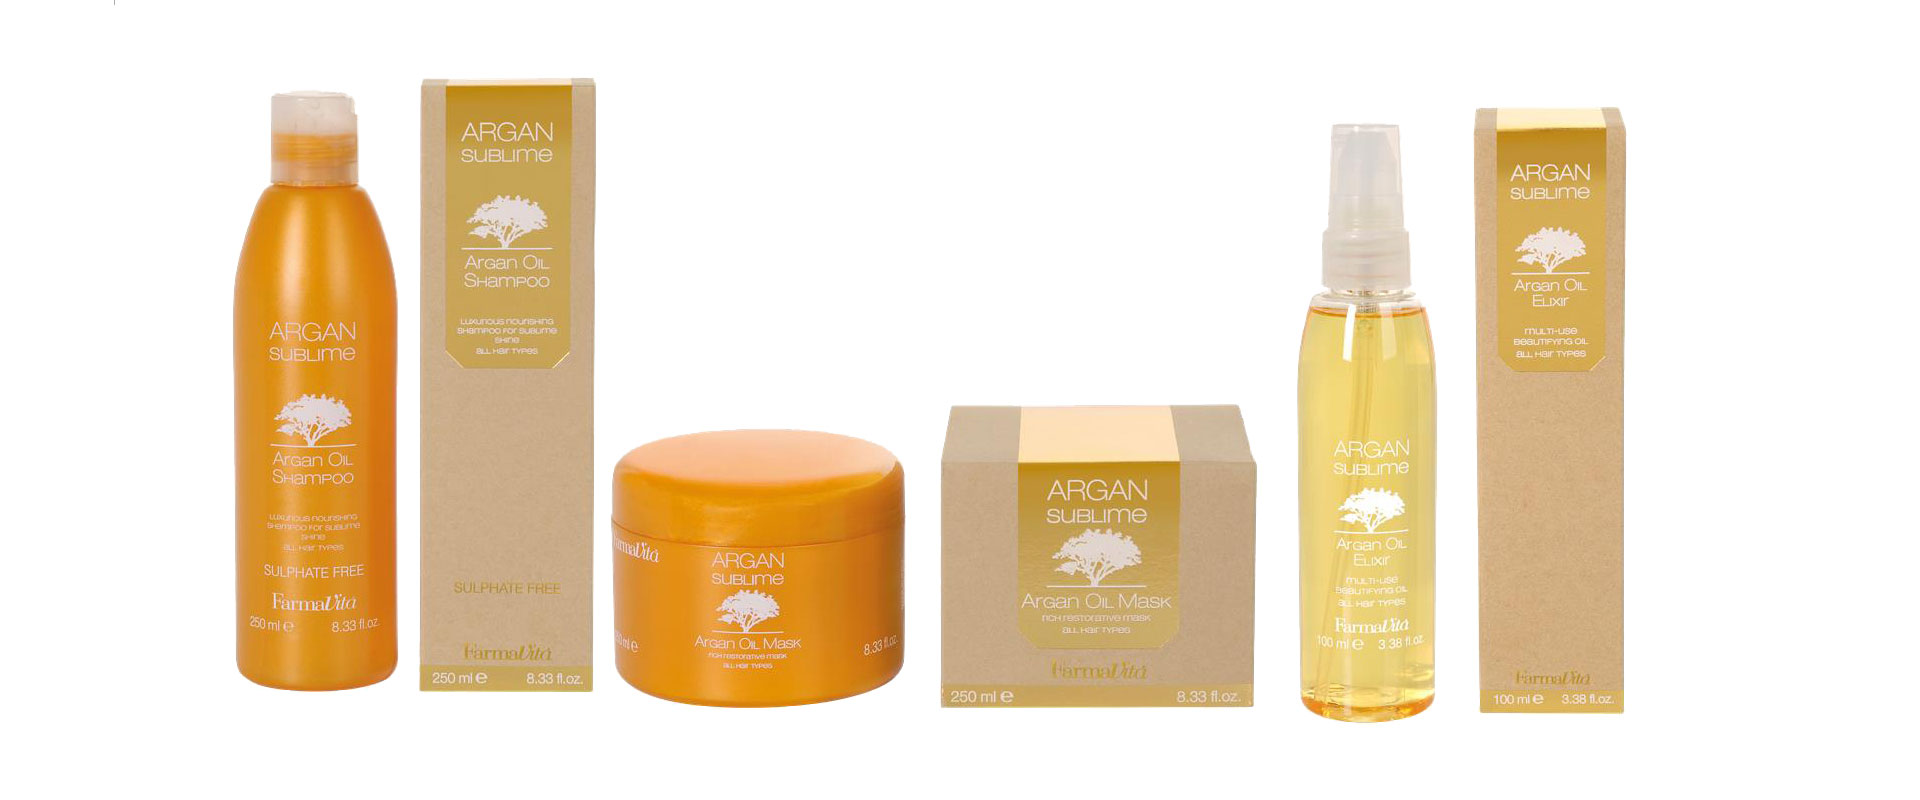 argan-sublime-farmavita-australia